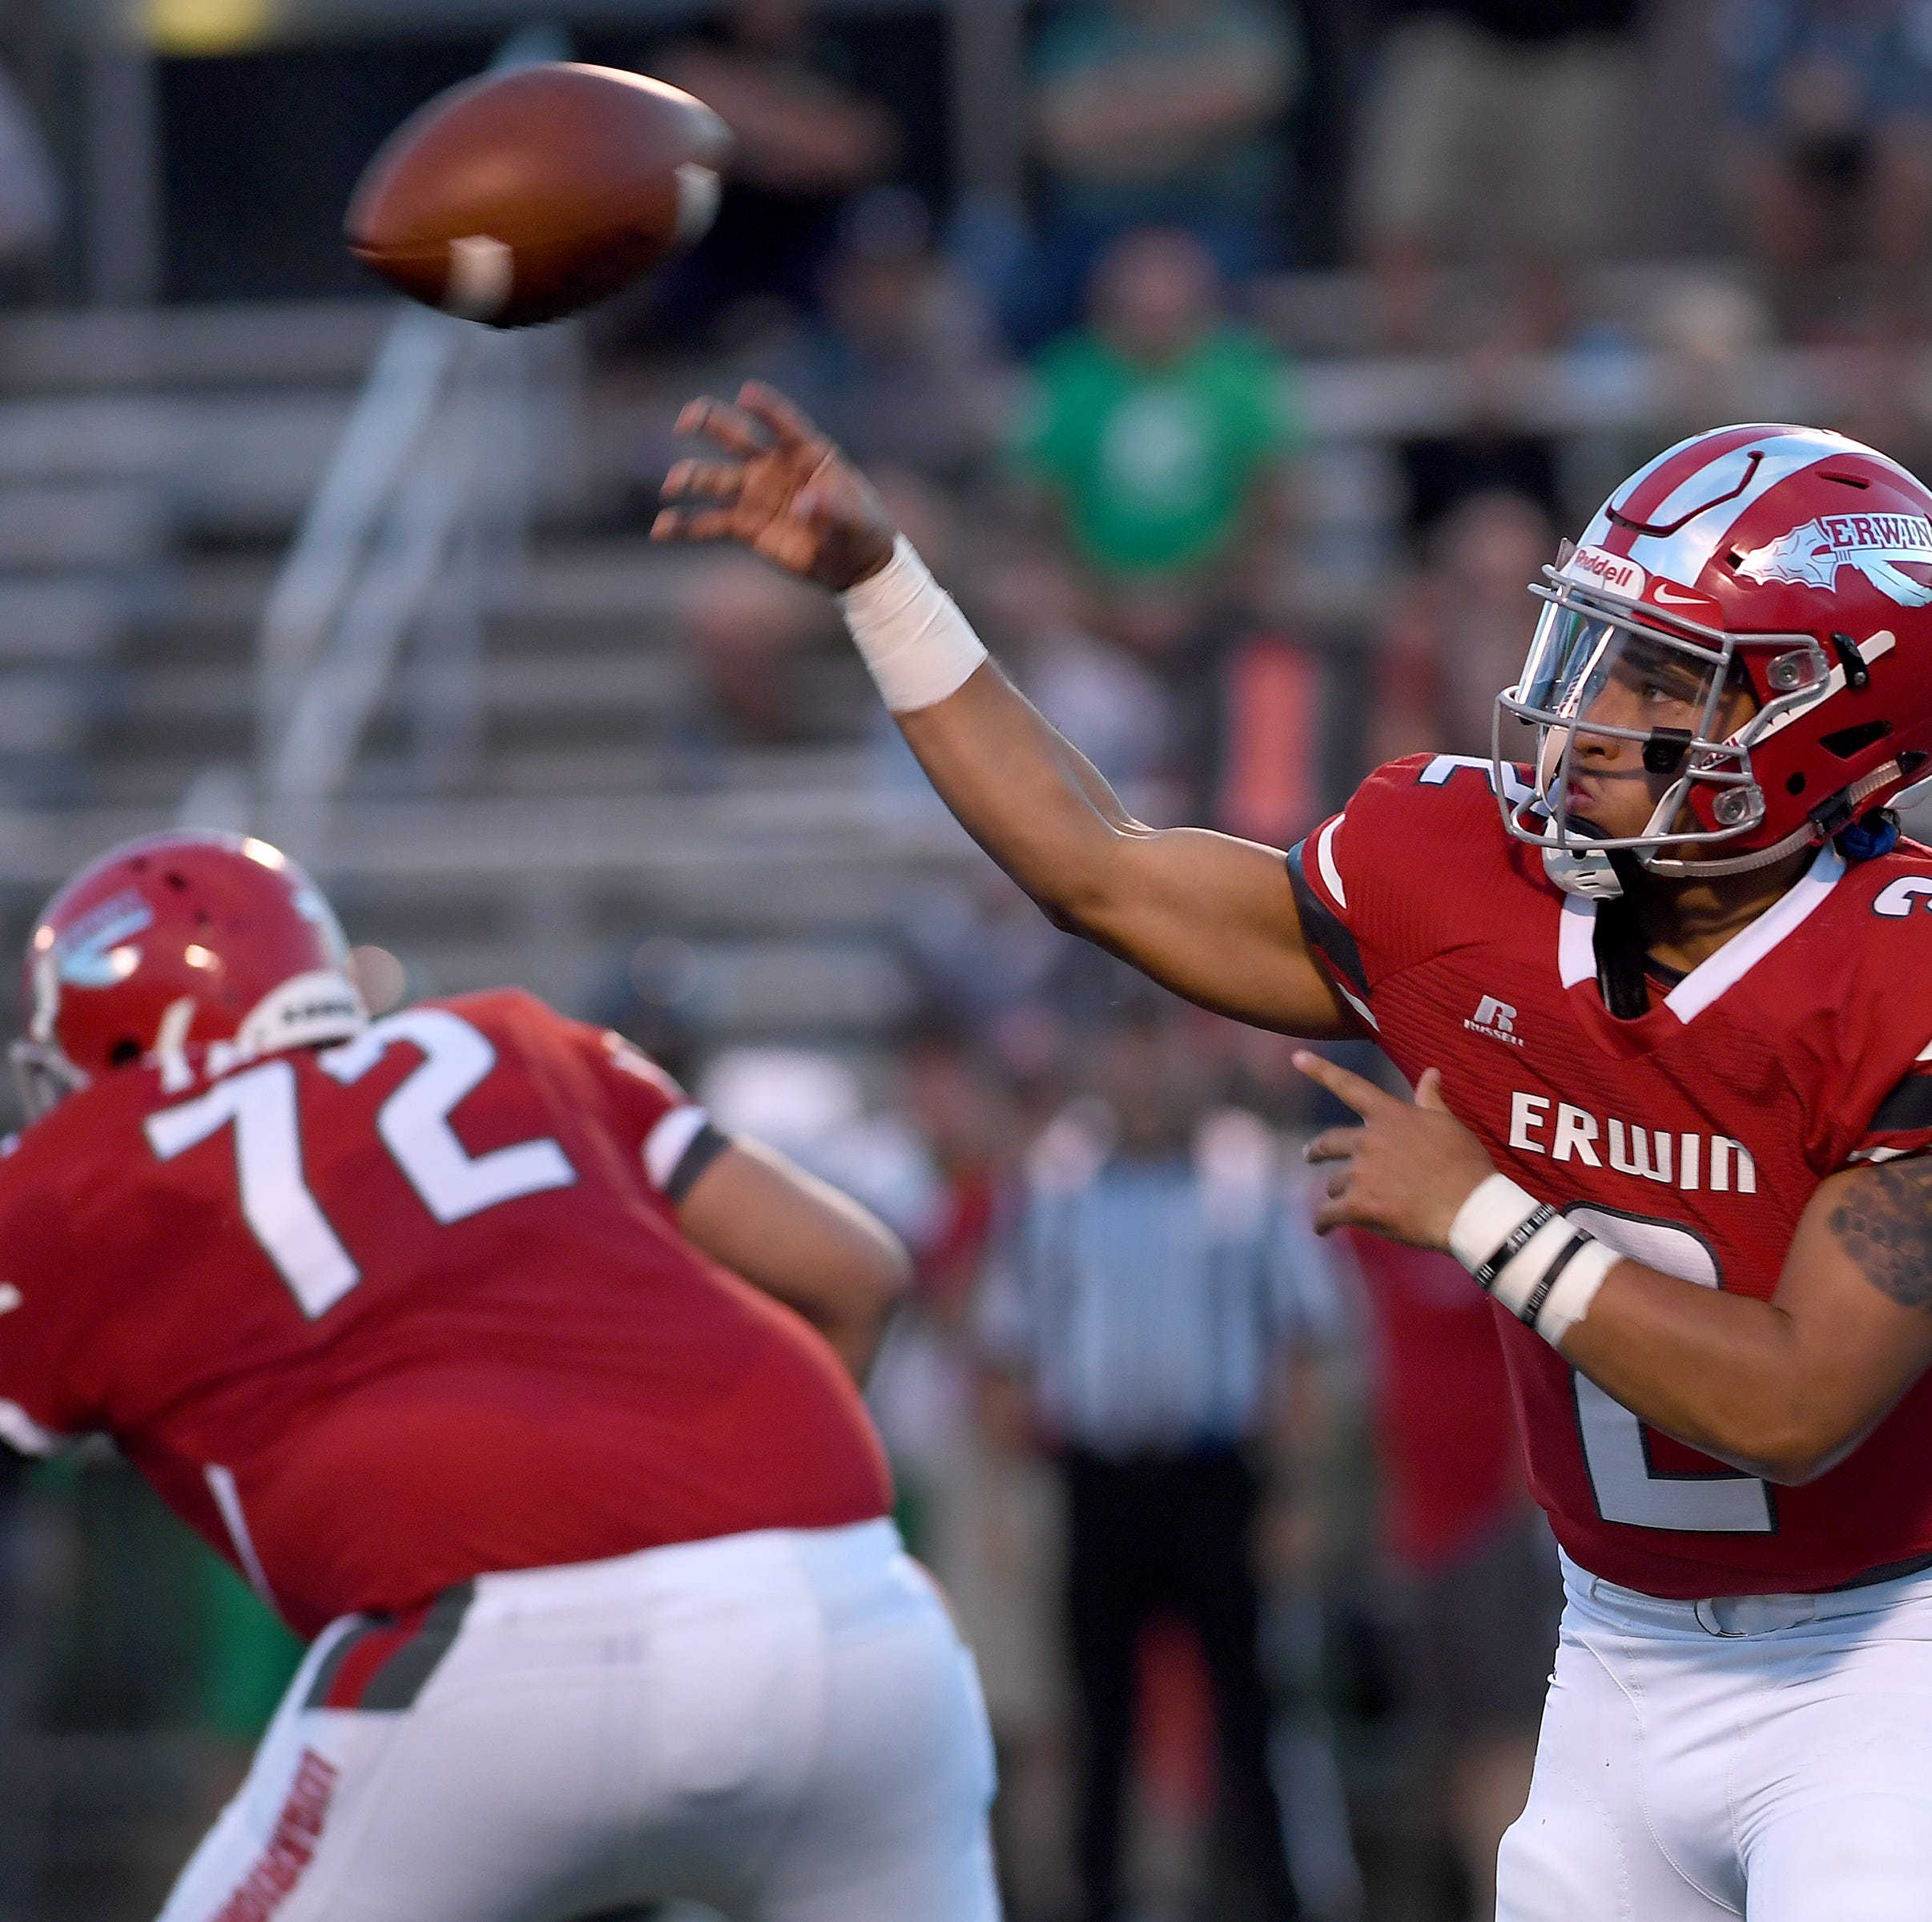 Erwin's Dillon Luther commits to Division I program